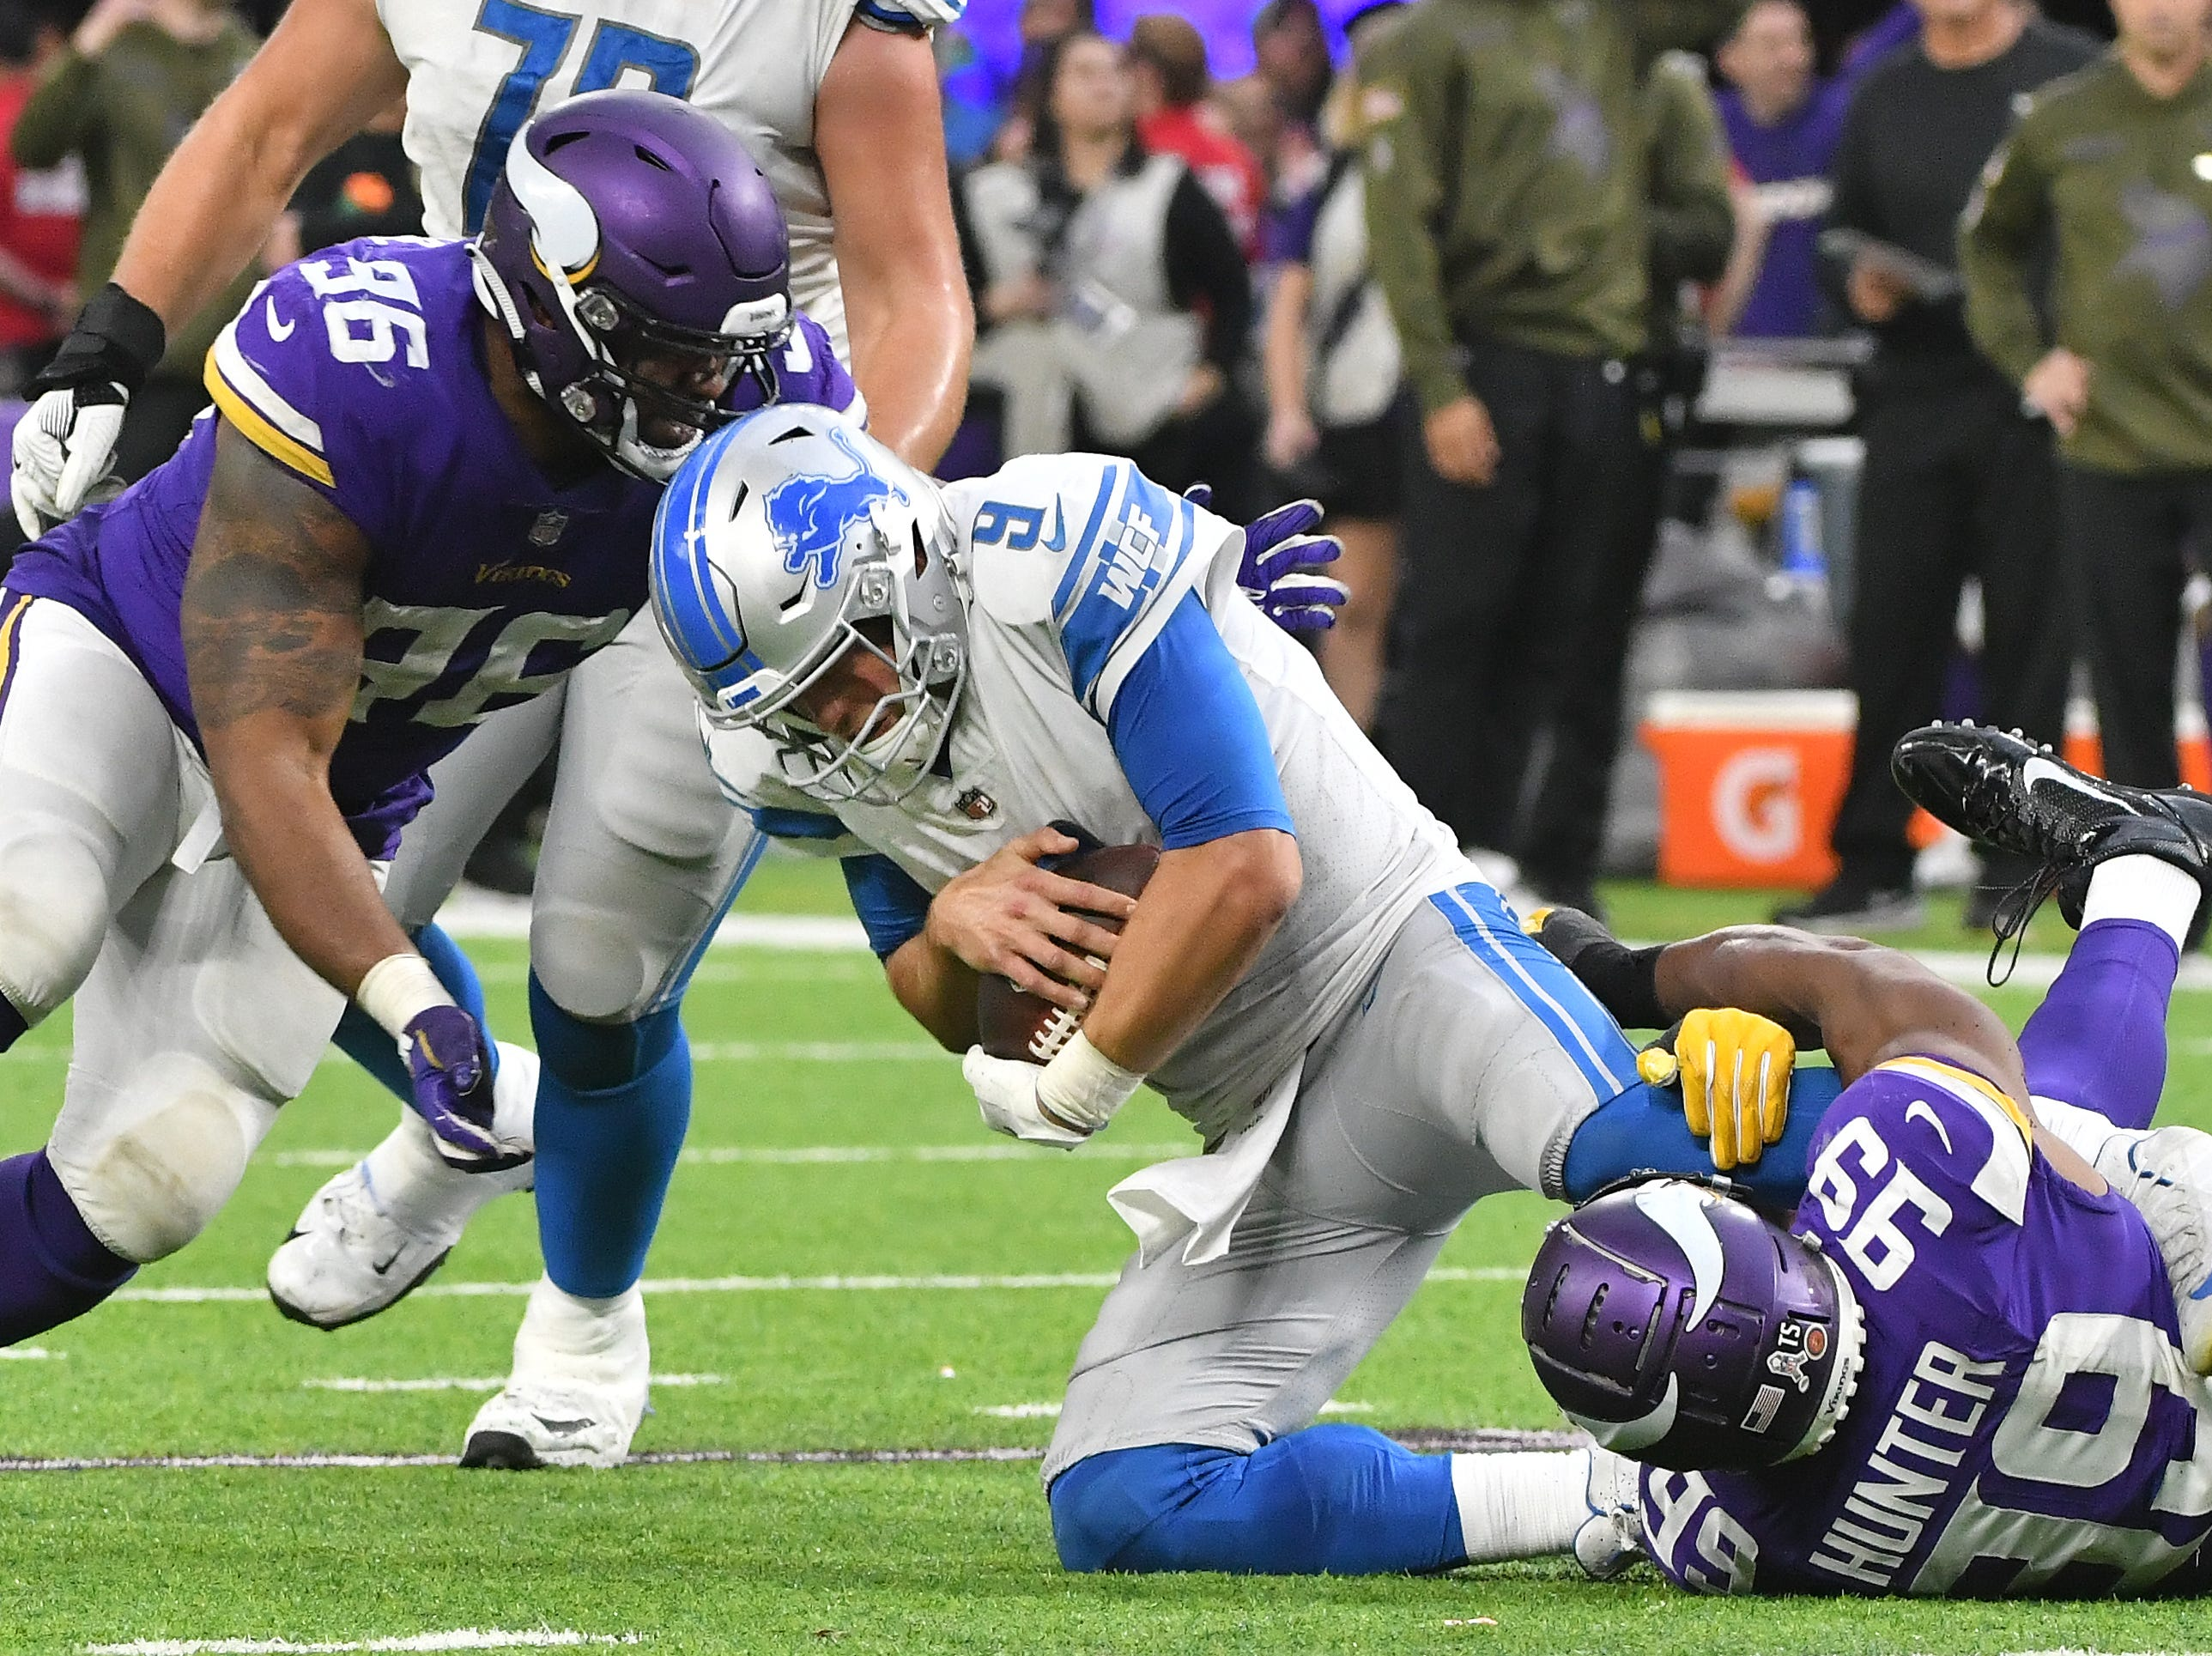 Lions quarterback Matthew Stafford is sacked for the 10th time, this time by Vikings' Everson Griffen and Danielle Hunter late in the fourth quarter.